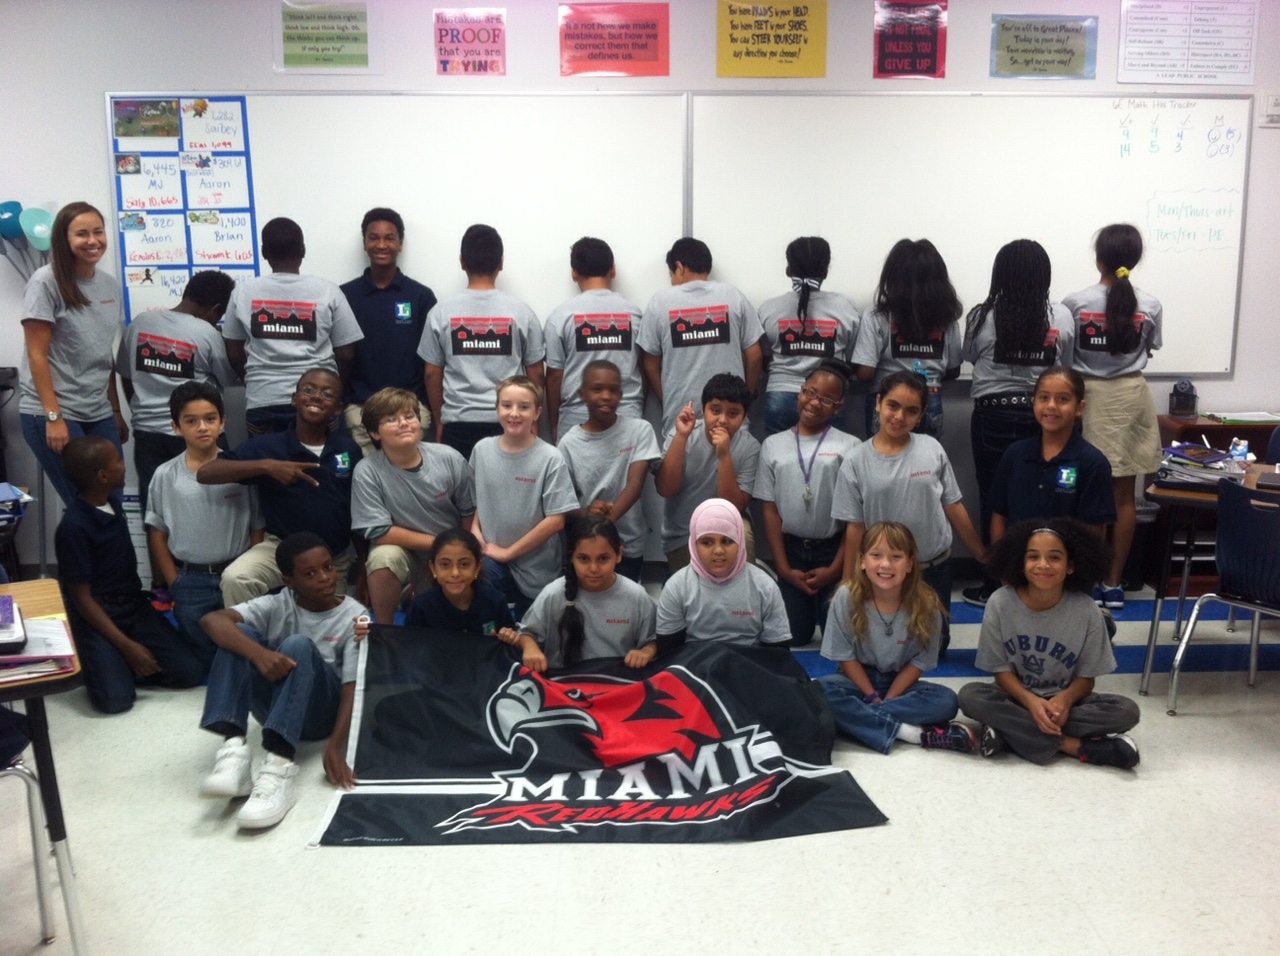 Natalie Klem (Miami Alum) and her homeroom classroom repping their Miami OH Skyline Shirts!